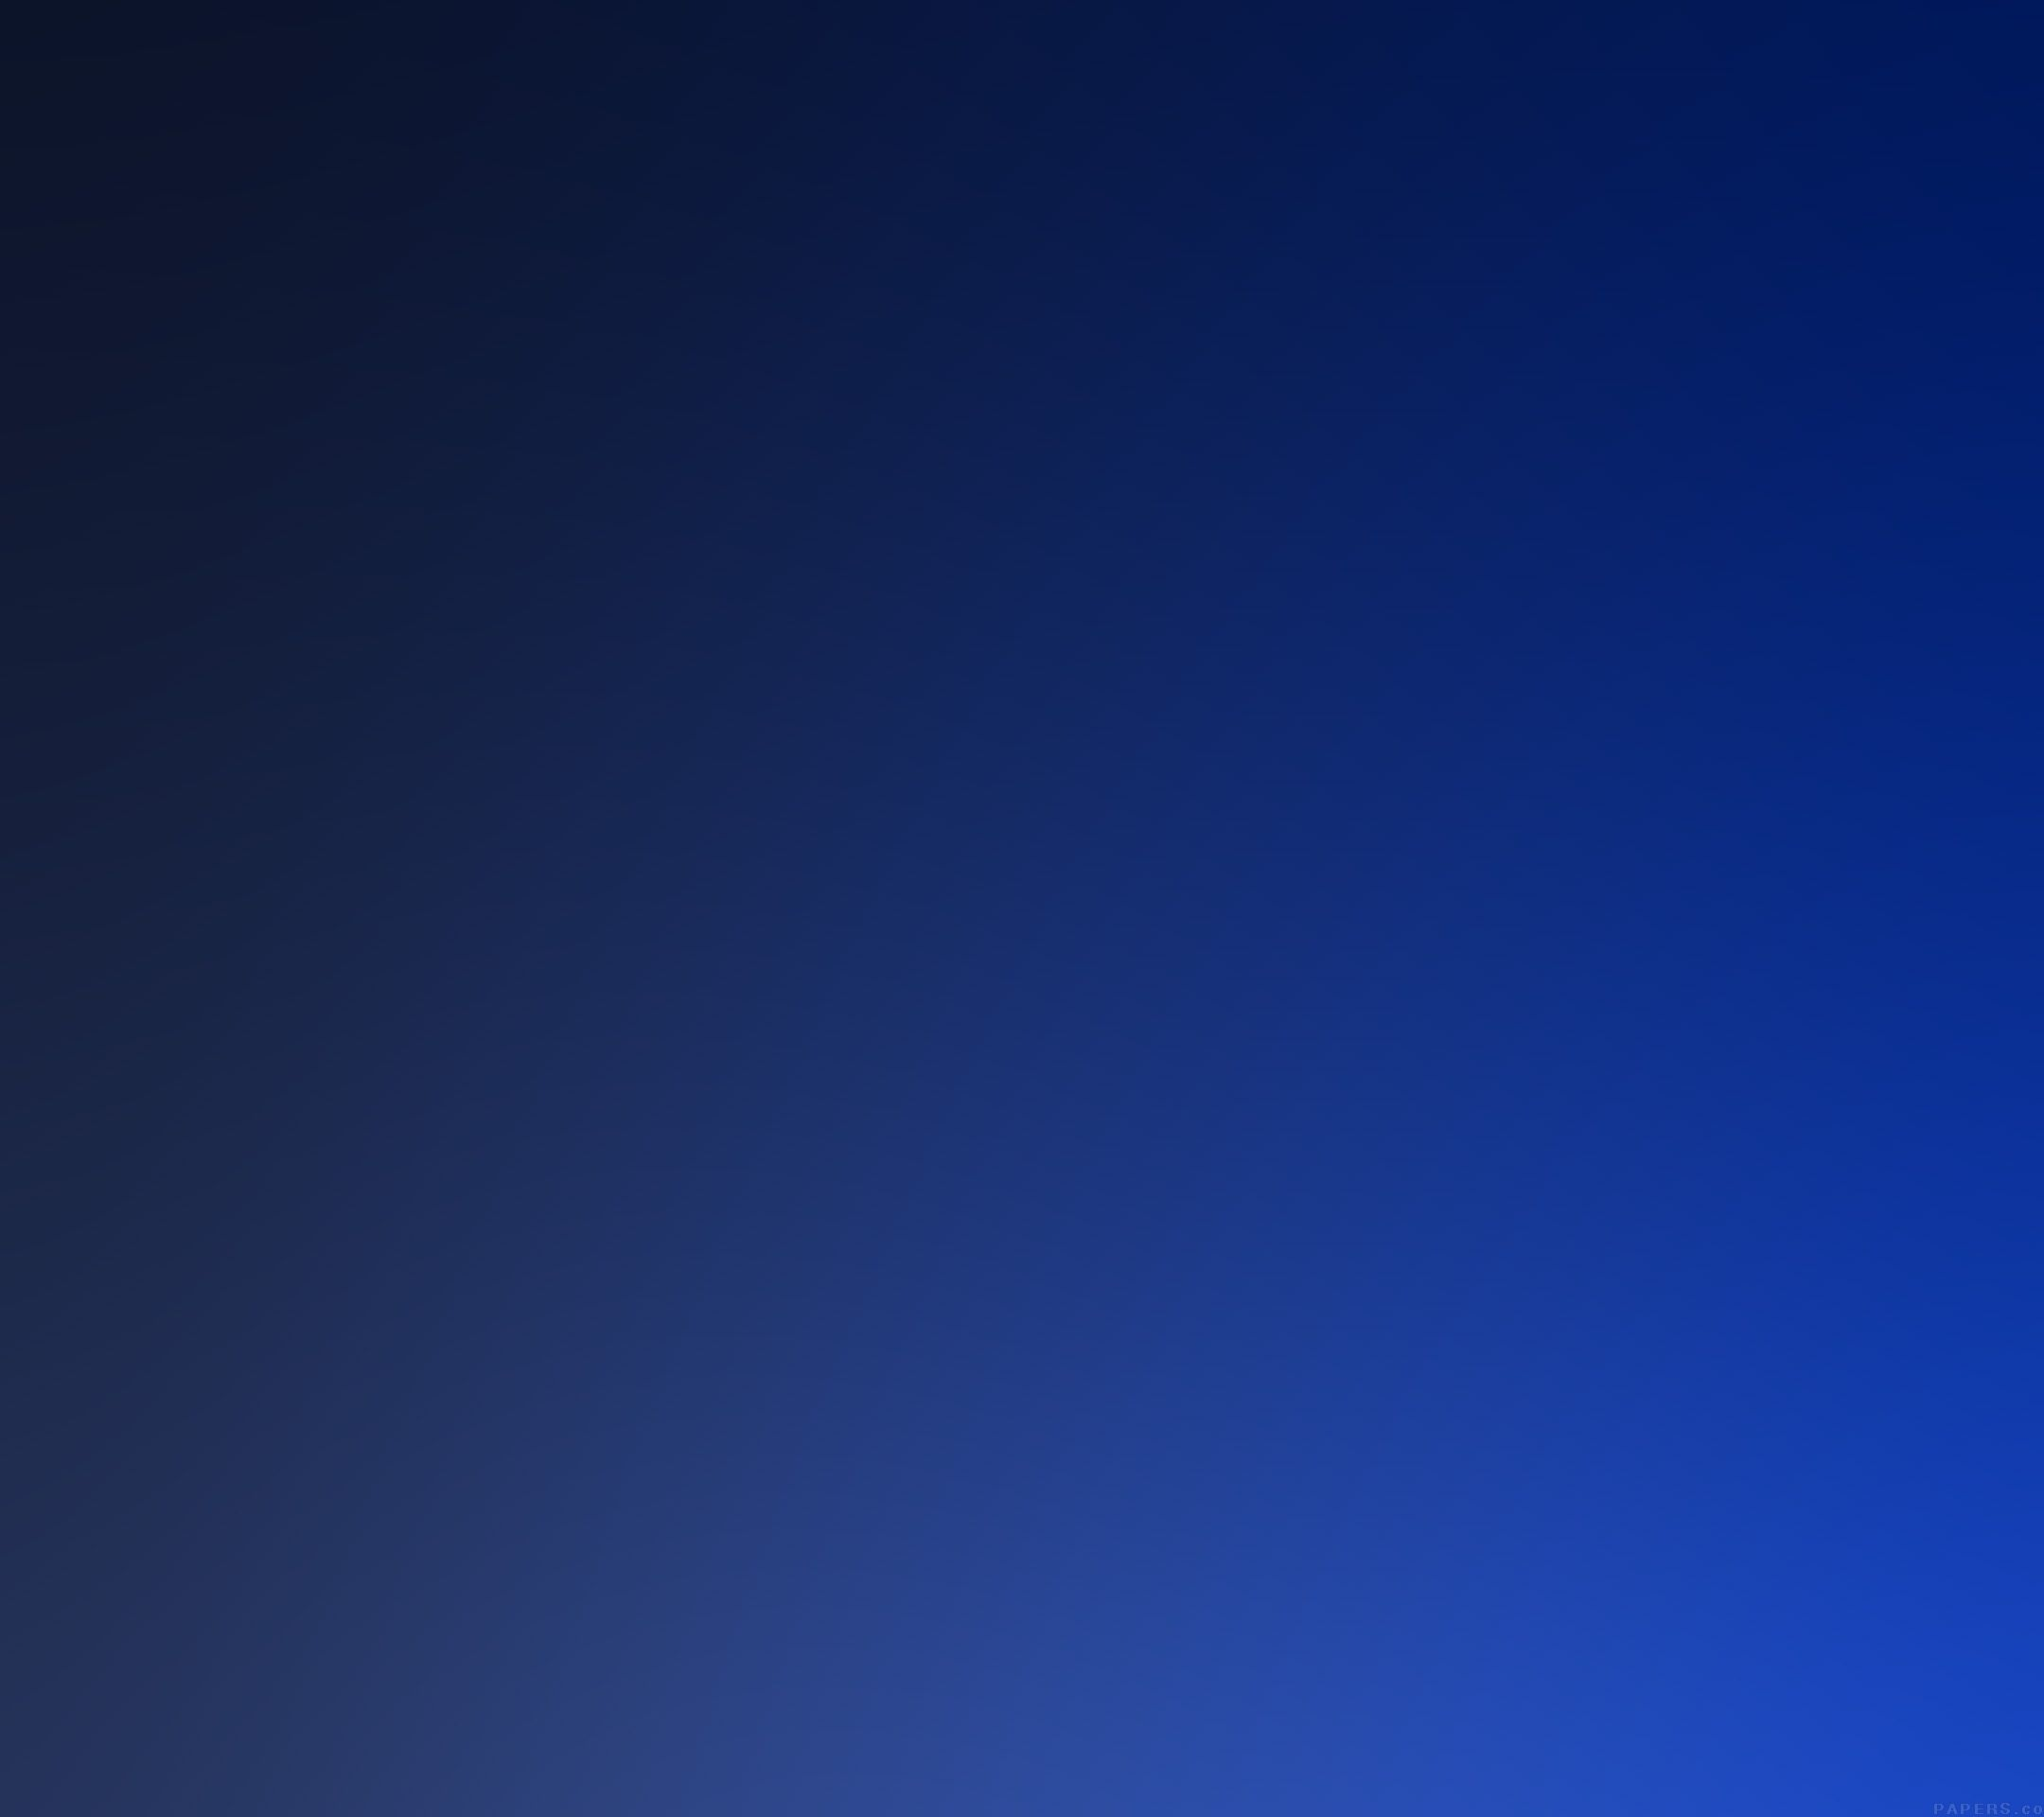 httpandroidpapers cosf03 dark blue ocean dark blueoceanwallpapers androidgoogle nexus